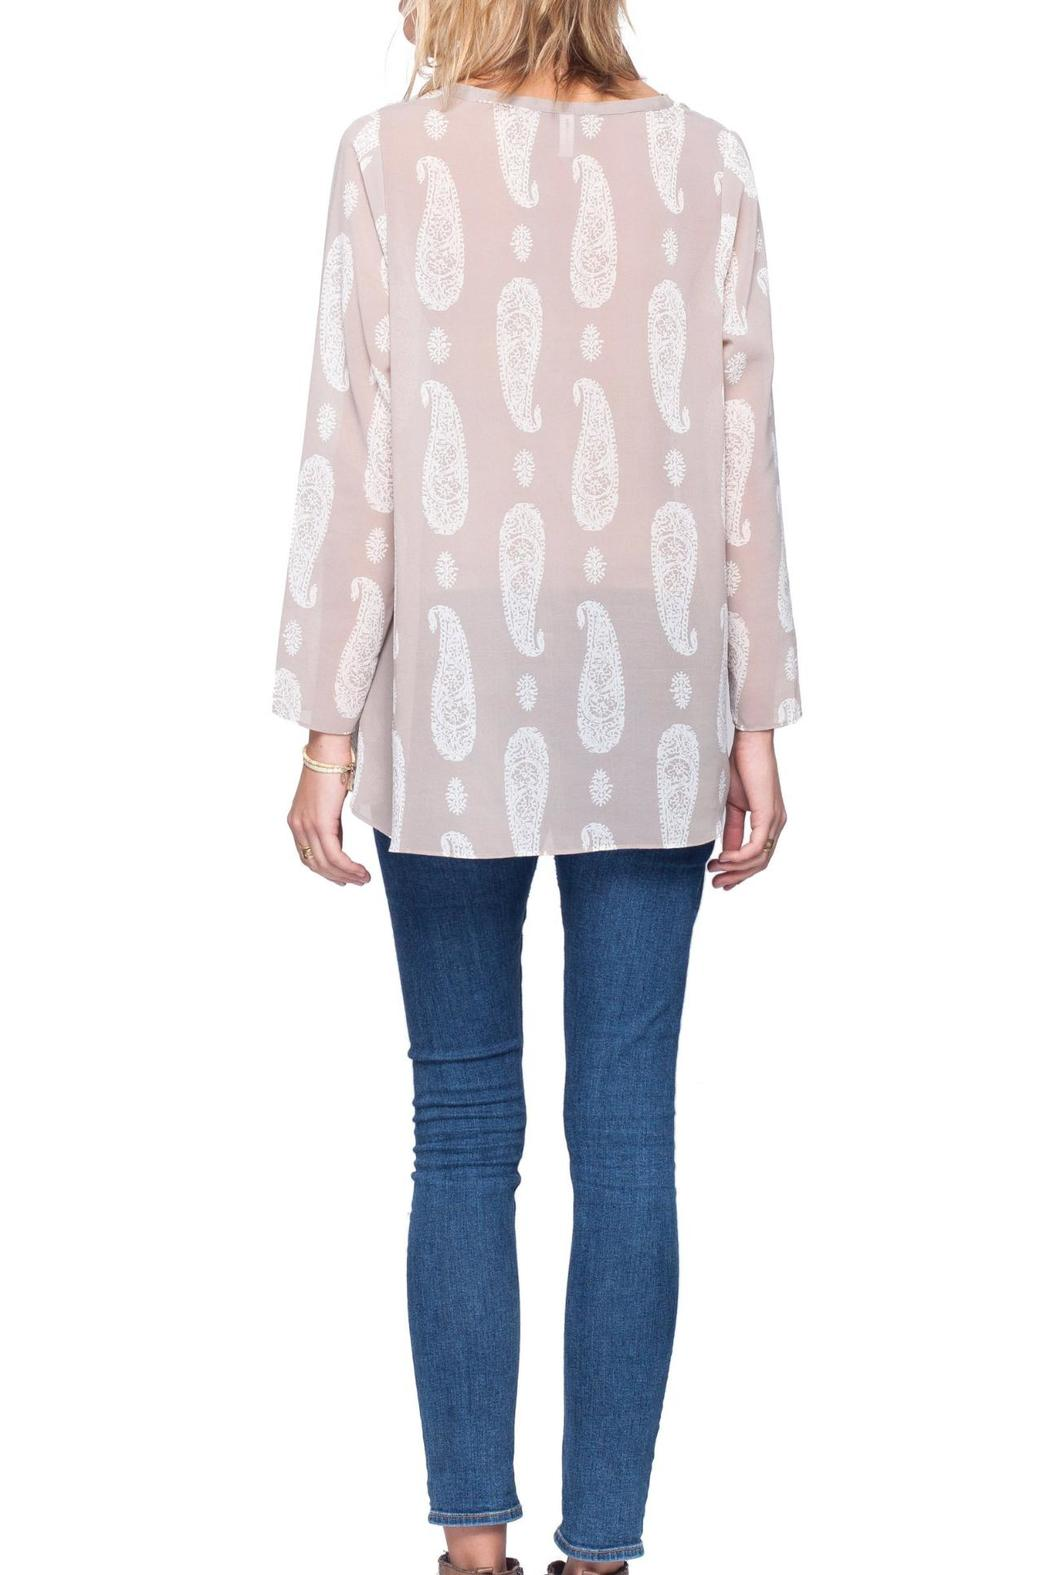 Gentle Fawn Paisley Print Top - Back Cropped Image